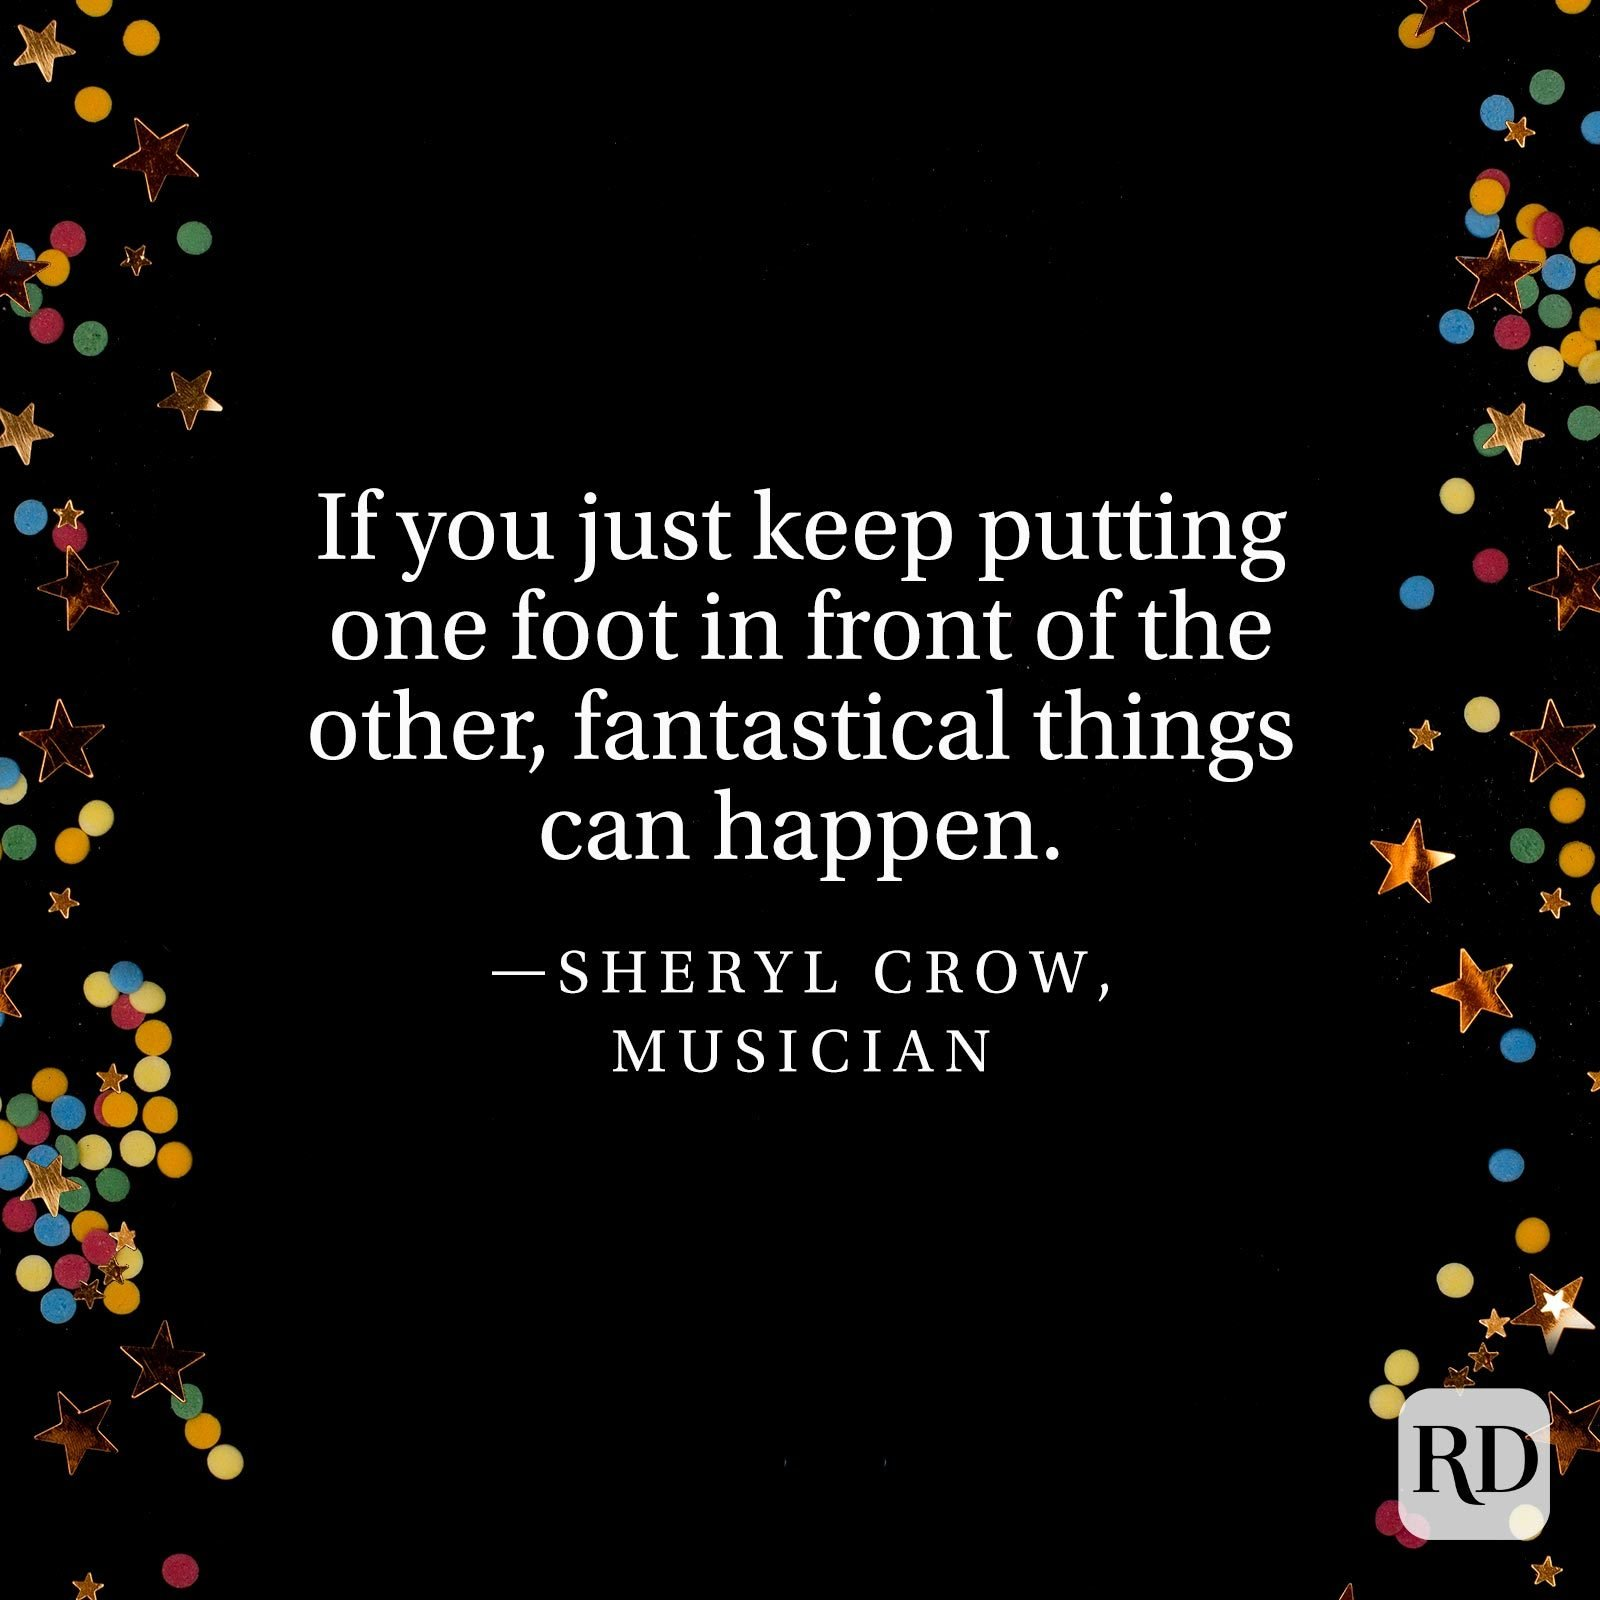 """If you just keep putting one foot in front of the other, fantastical things can happen."" —Sheryl Crow, musician"